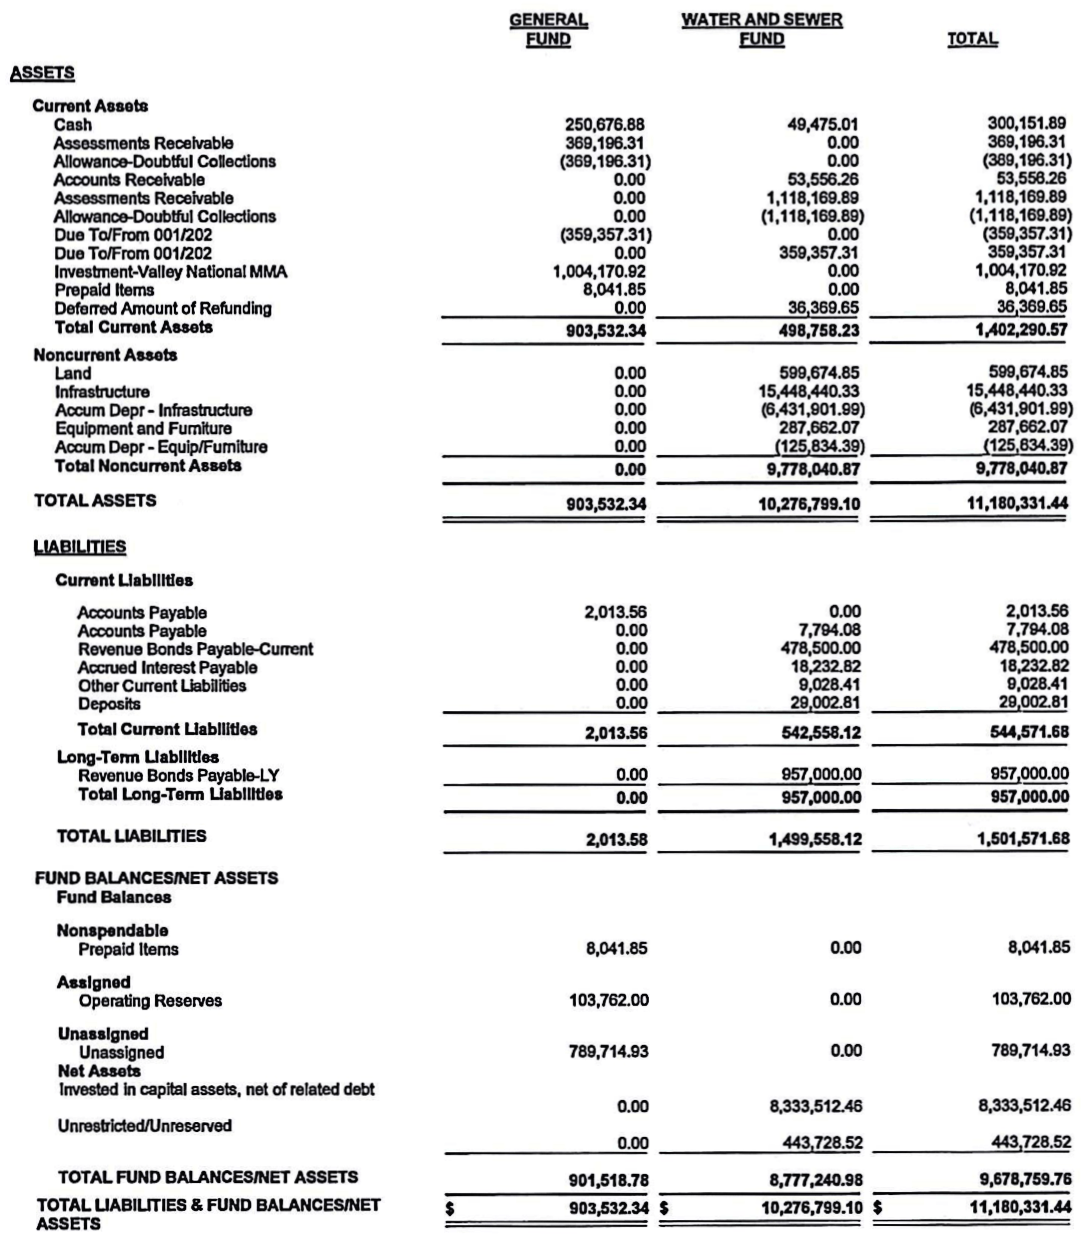 Balance Sheet by Fund data. See below for table